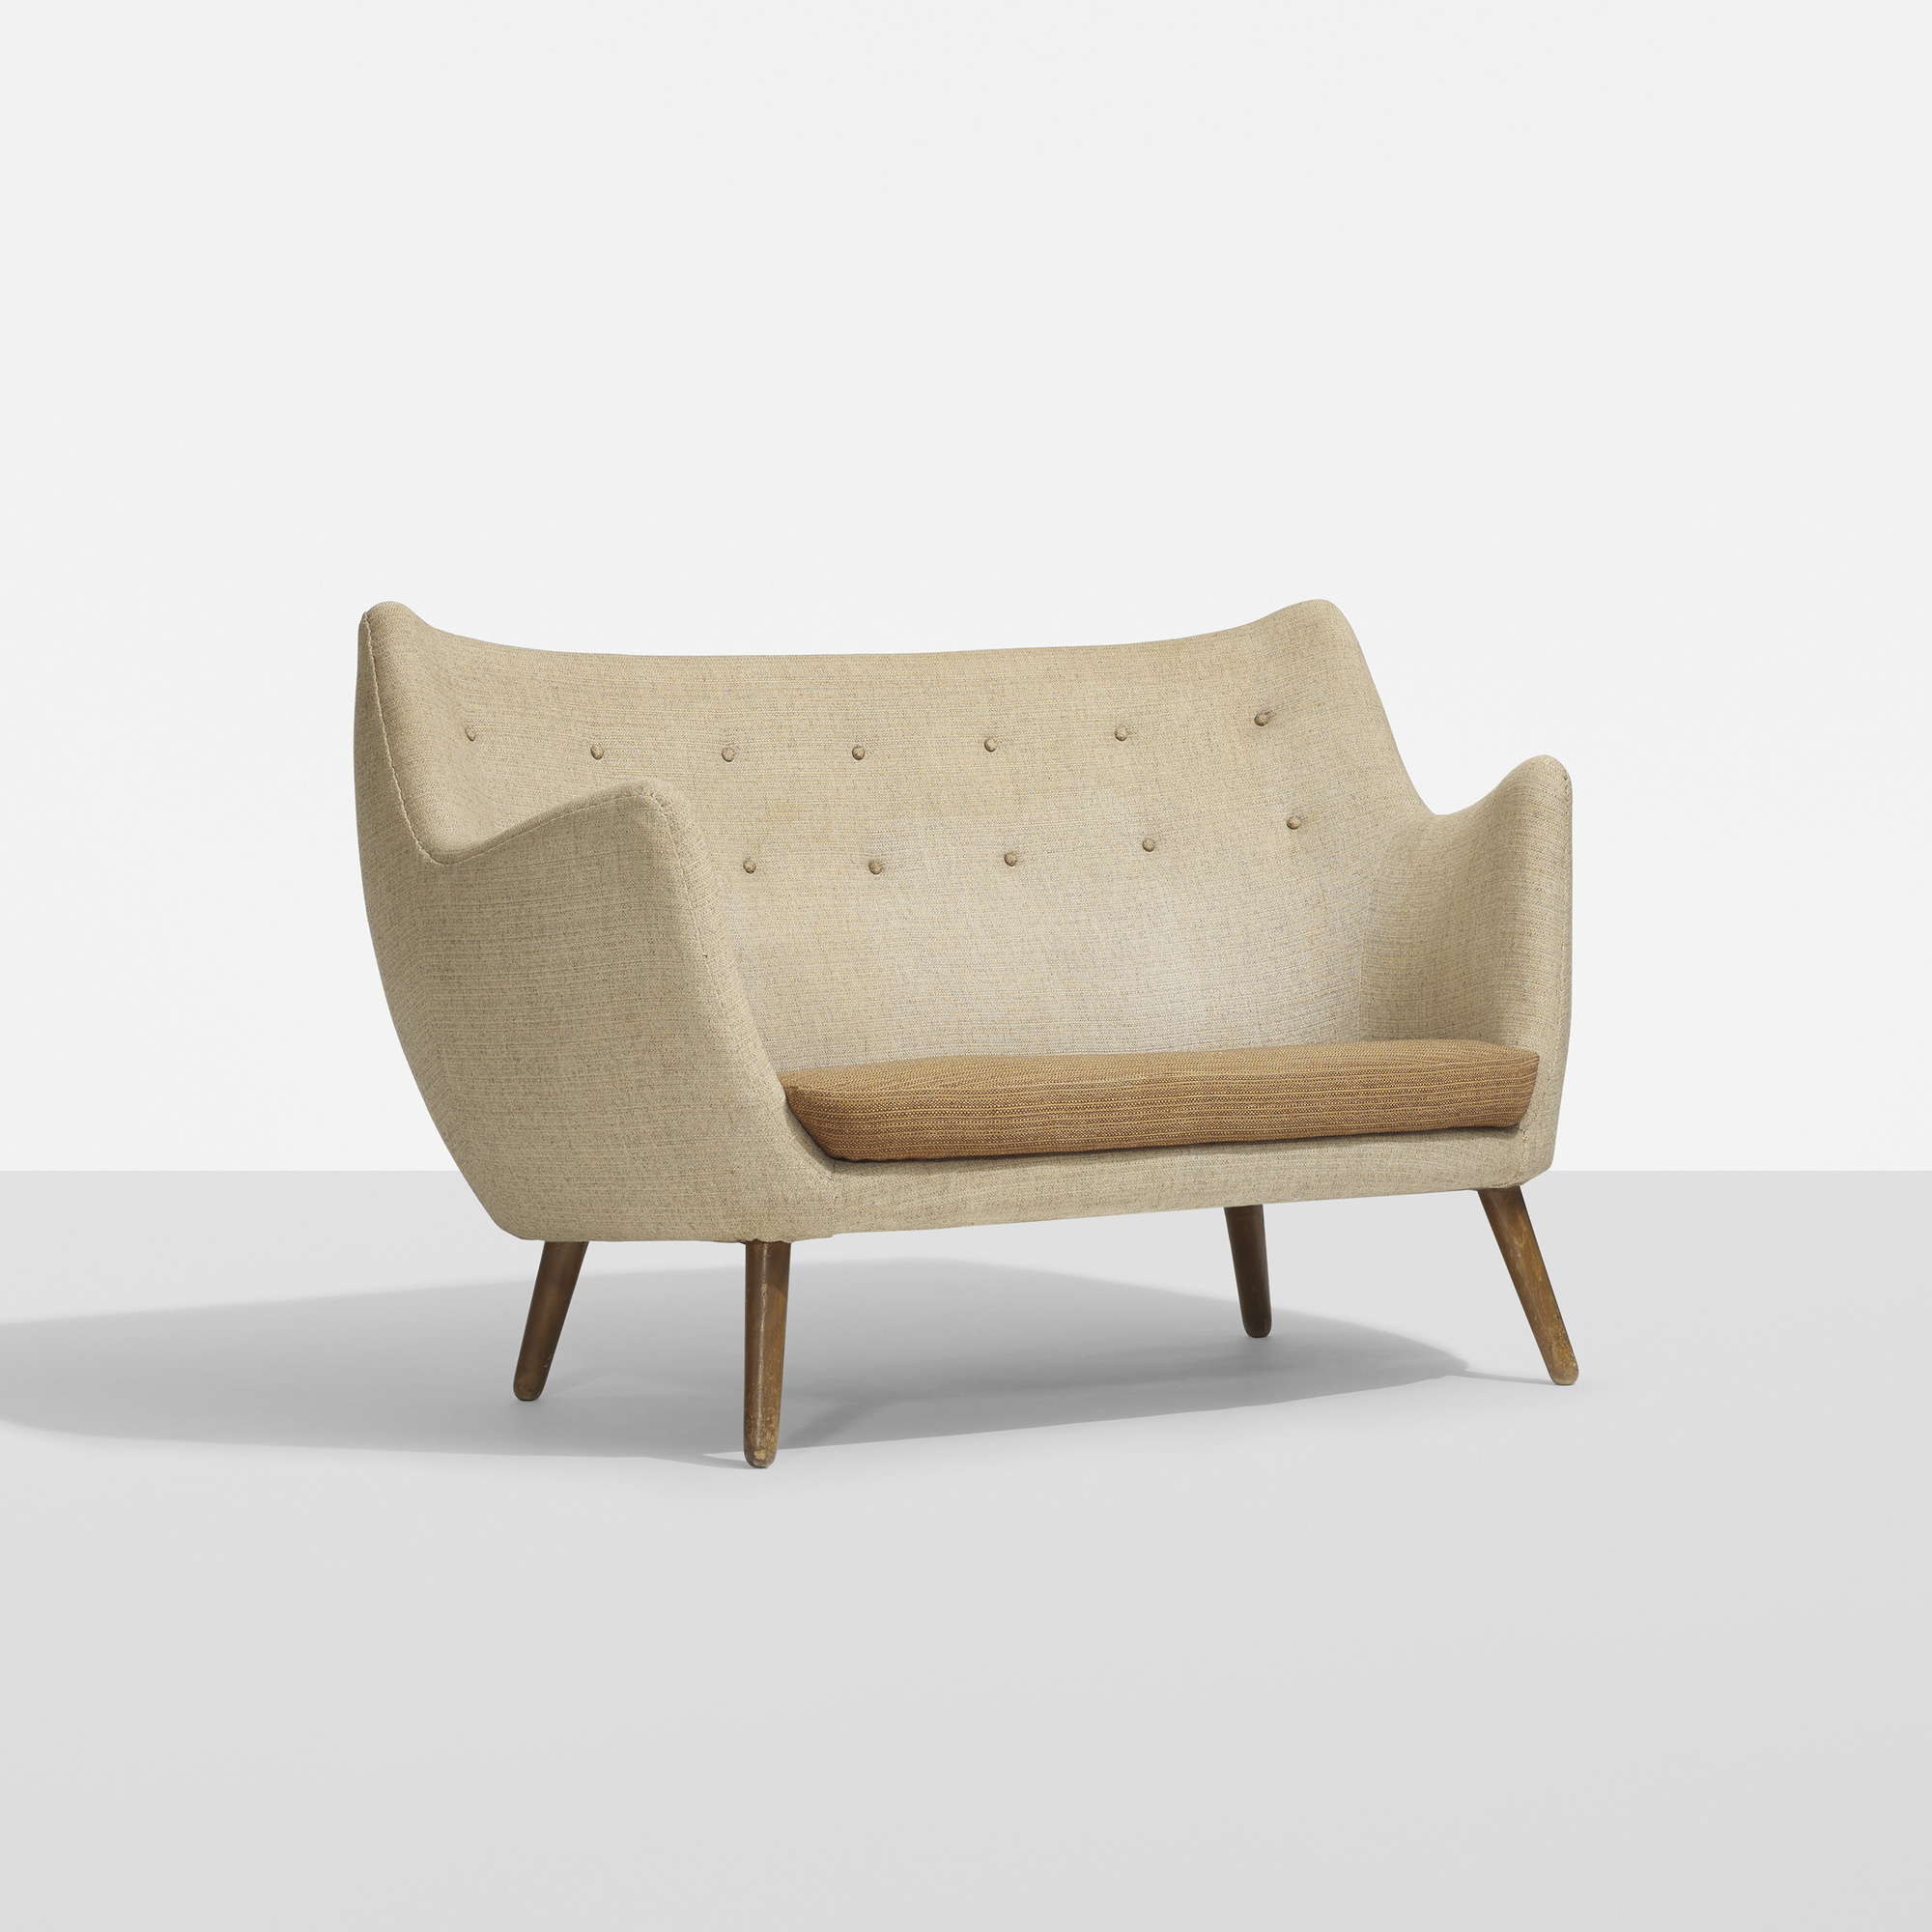 Finn juhl poet sofa review for Design sofa replica